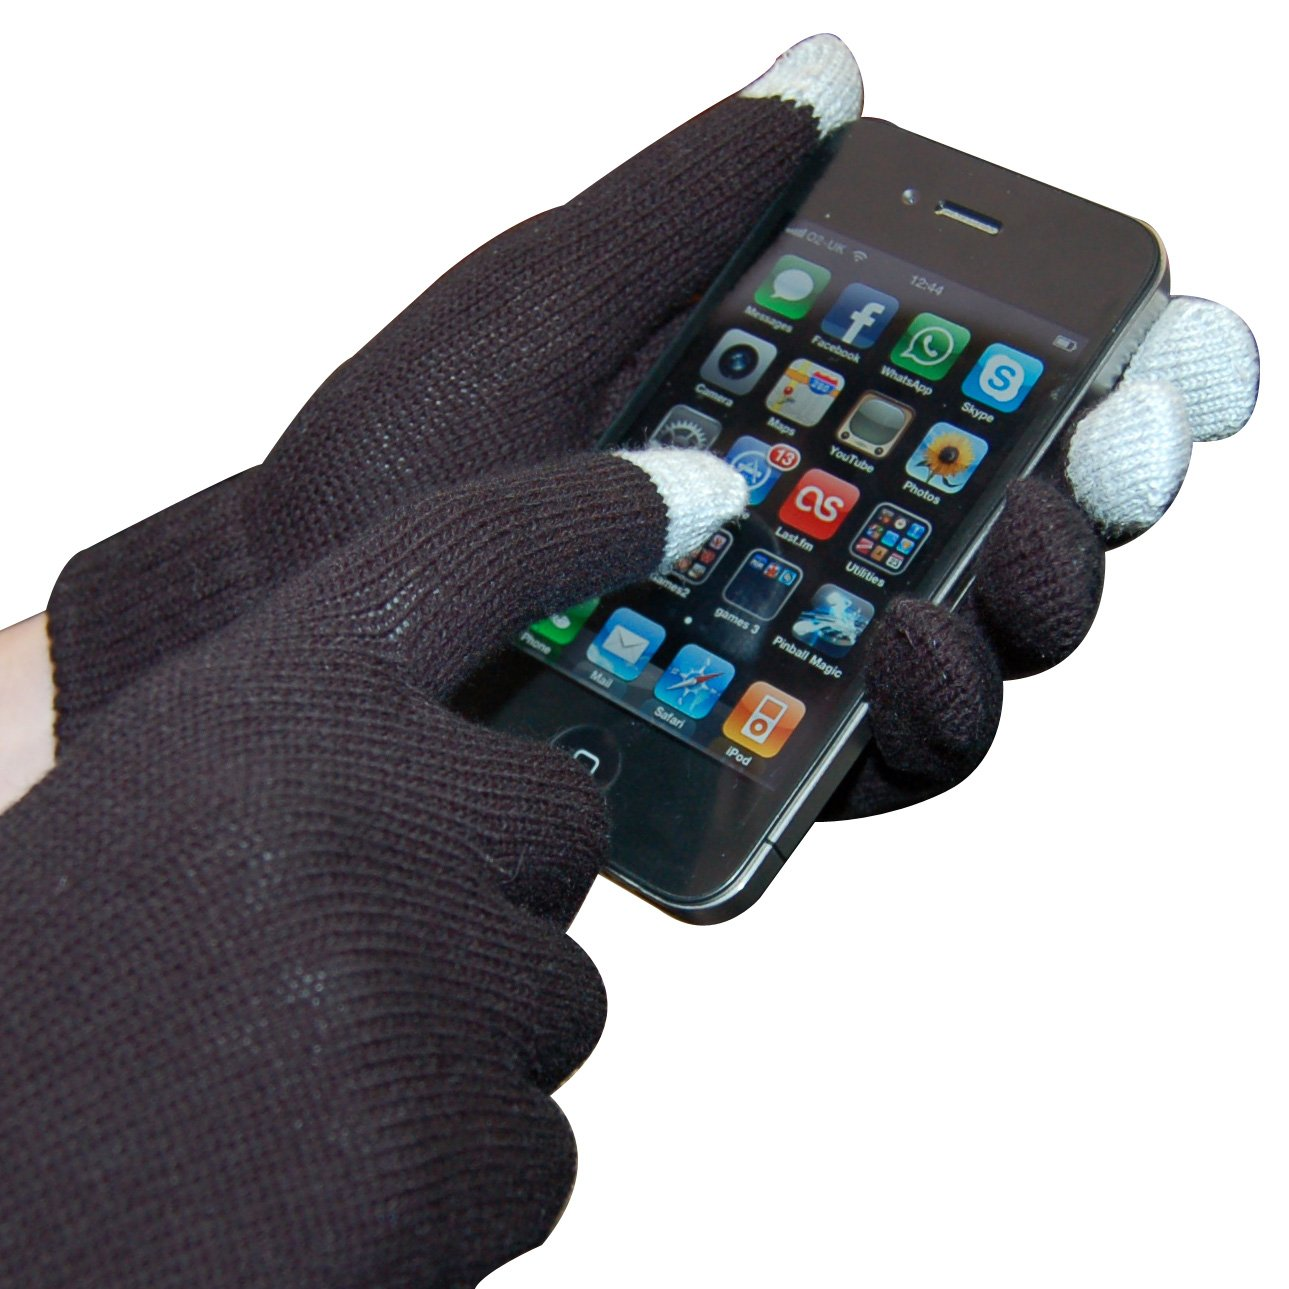 Mens gloves for smartphones - Amazon Com Dragonpad Smart Glove Touch Glove For Smartphone Retail Packaging Black Discontinued By Manufacturer Cell Phones Accessories